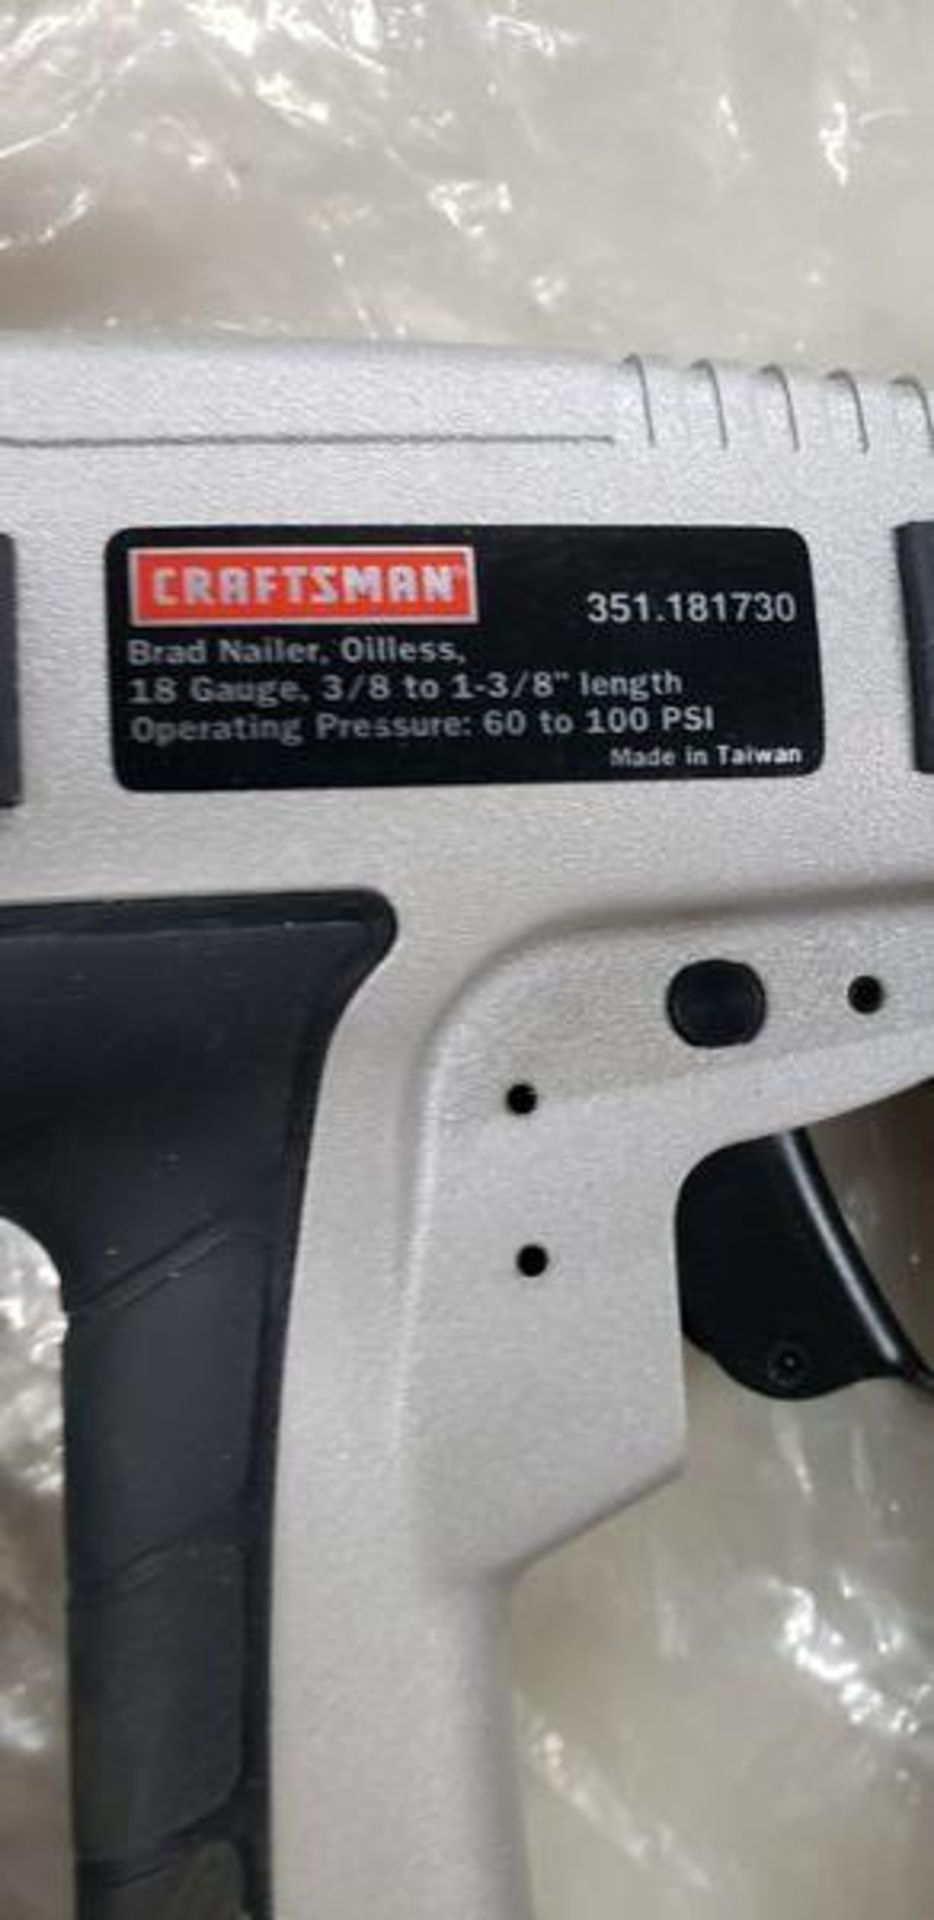 CRAFTSMAN PNEUMATIC FINISH NAILER AND BRAD NAILER WITH CARRY CASE - Image 5 of 6